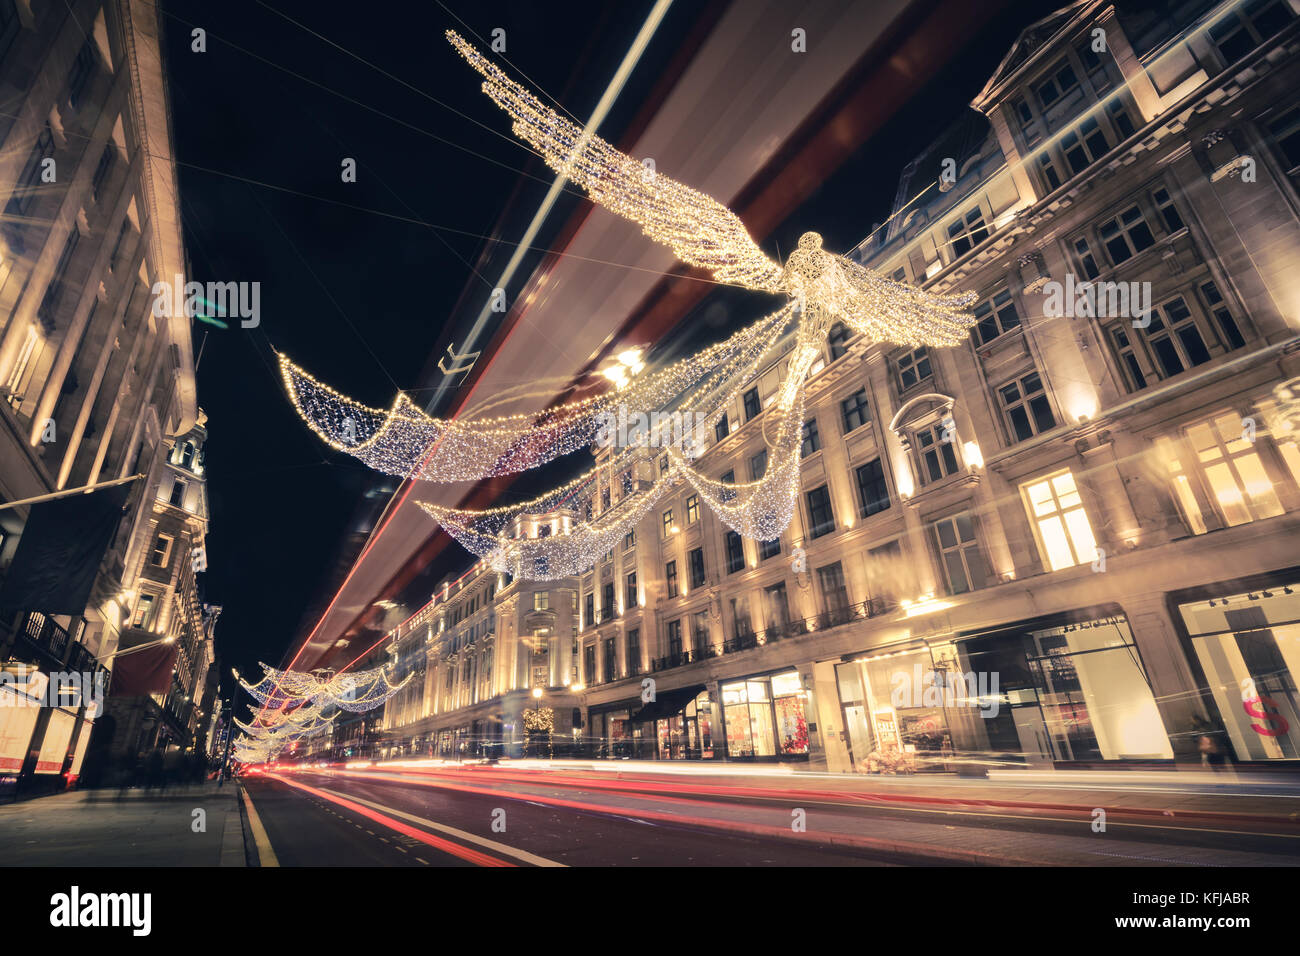 Regent Street Angels Holiday Lights with Double Decker Bus Light Trails in London, United Kingdom - Stock Image